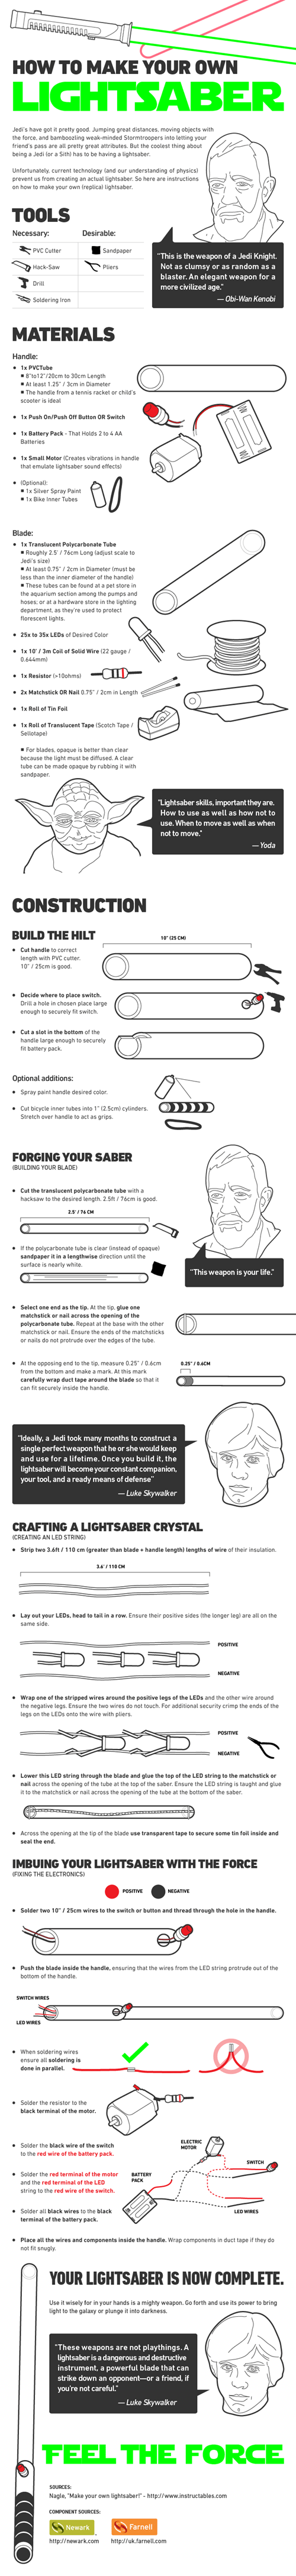 geek lightsaber star wars DIY infographic - 7951372800